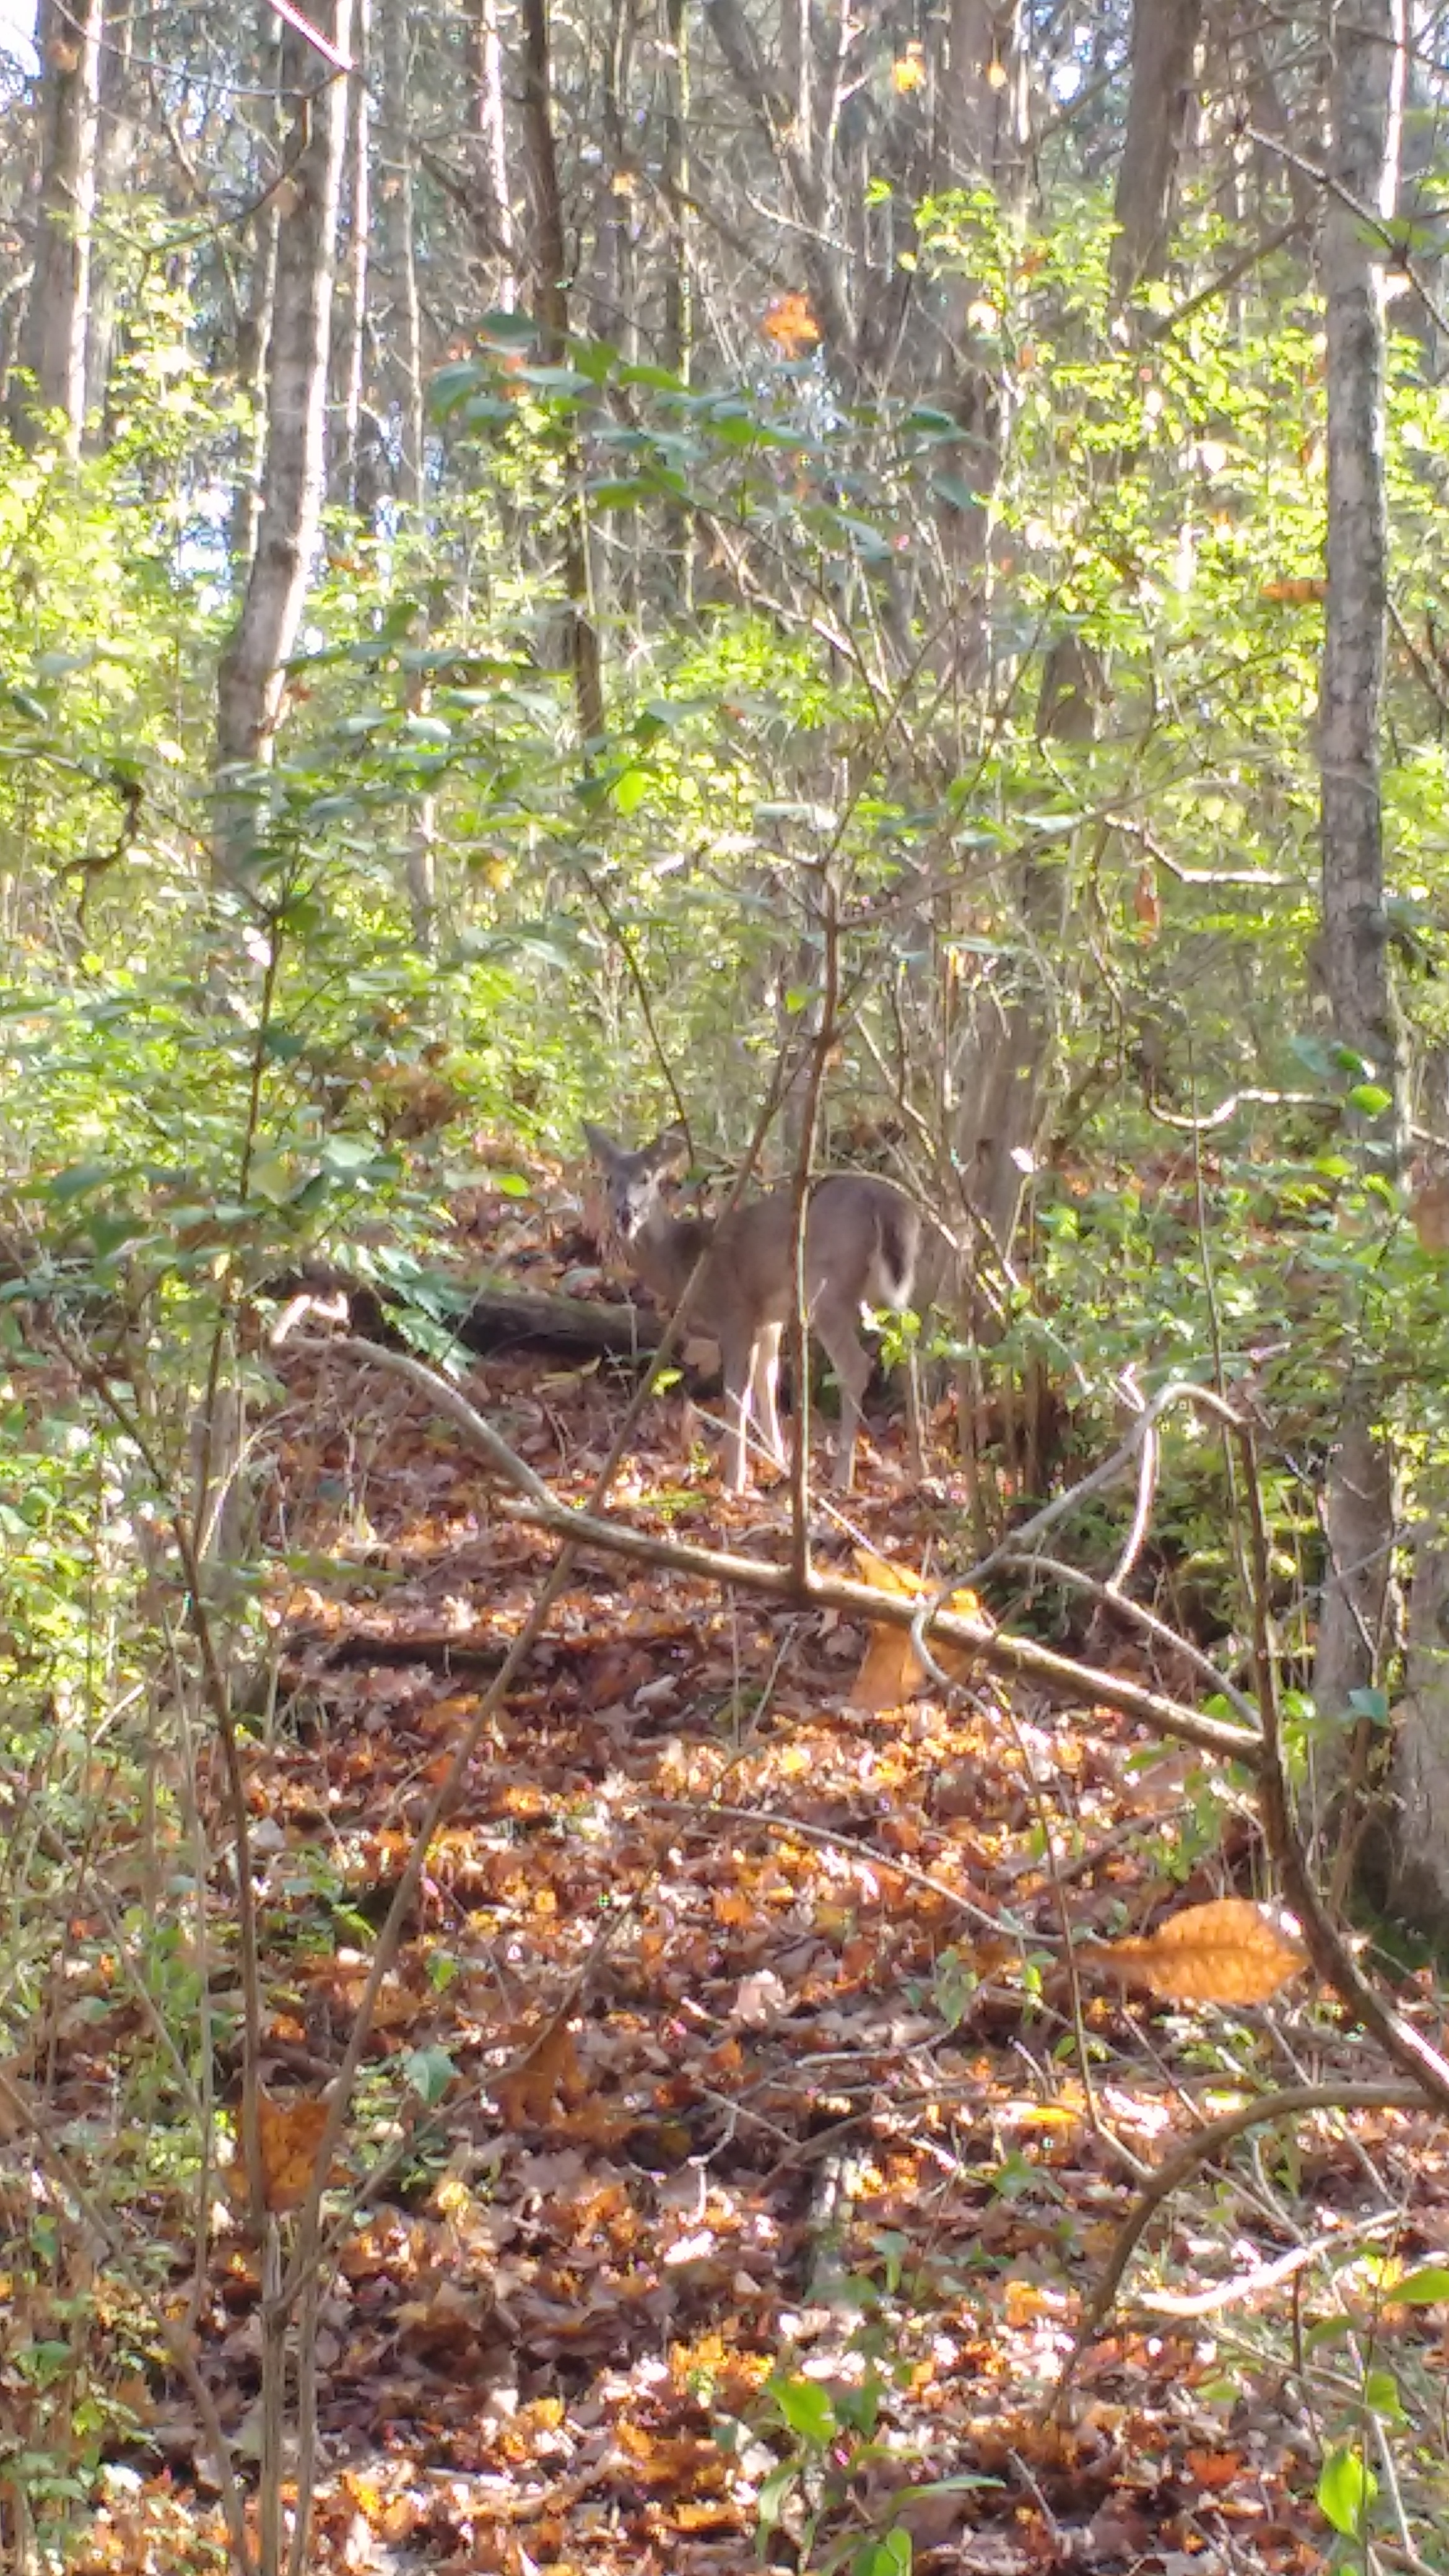 A deer enjoying the safety of Raven Run Nature Sanctuary